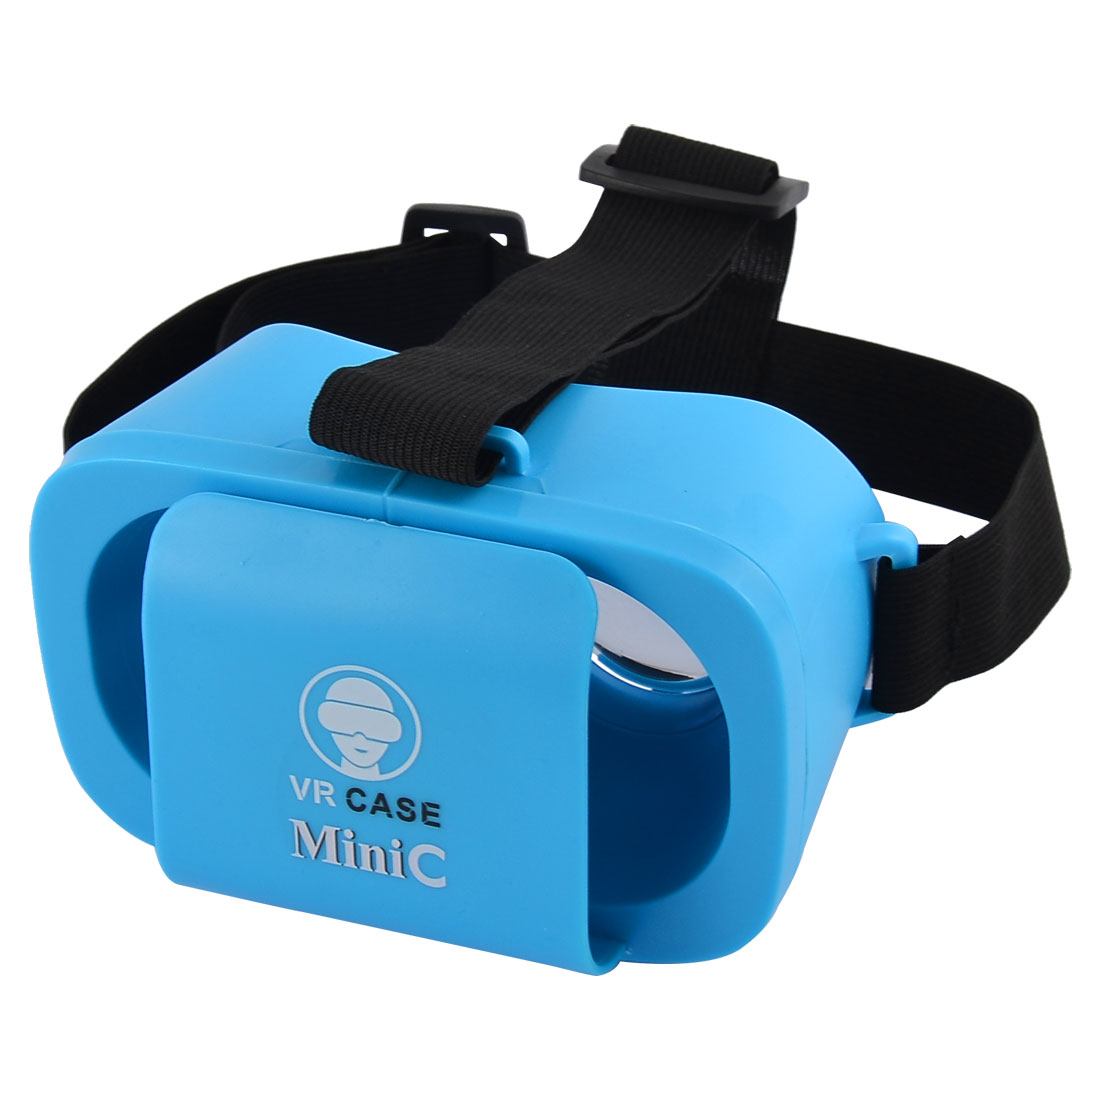 Universal Adjustable Lens T-shaped Straps Mini 3D Virtual Reality Glasses Blue for 4.7-5.5 Inch Smartphones